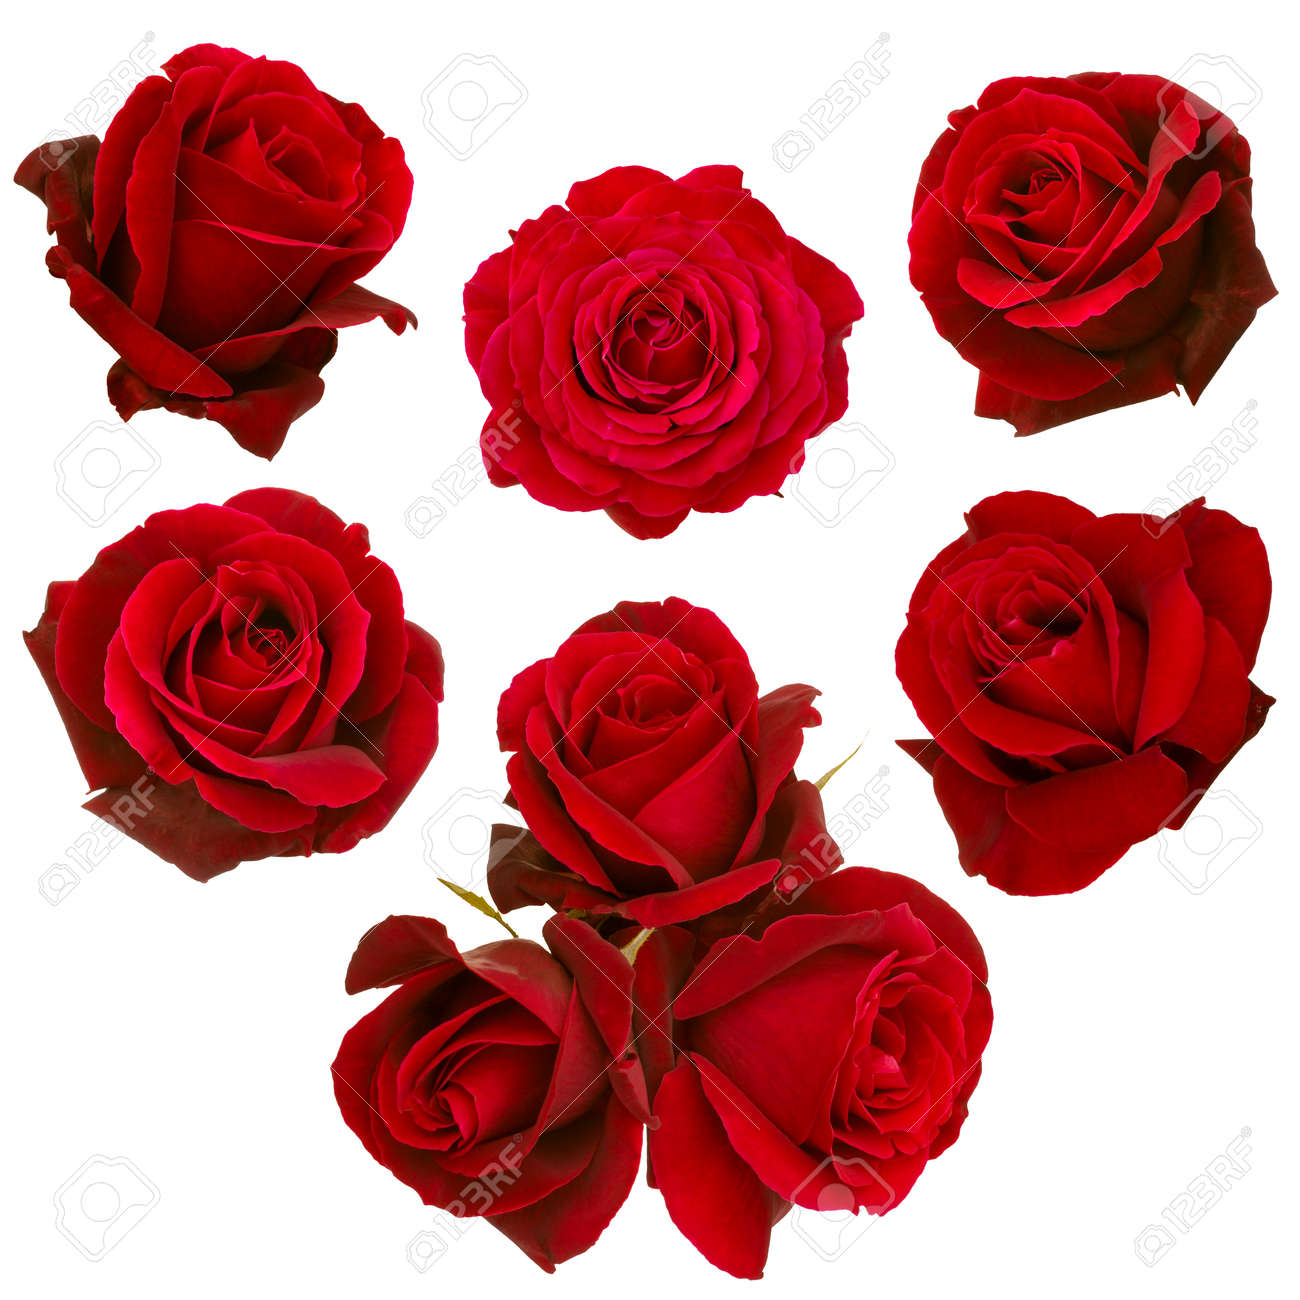 collage of red roses isolated on white background - 51550920